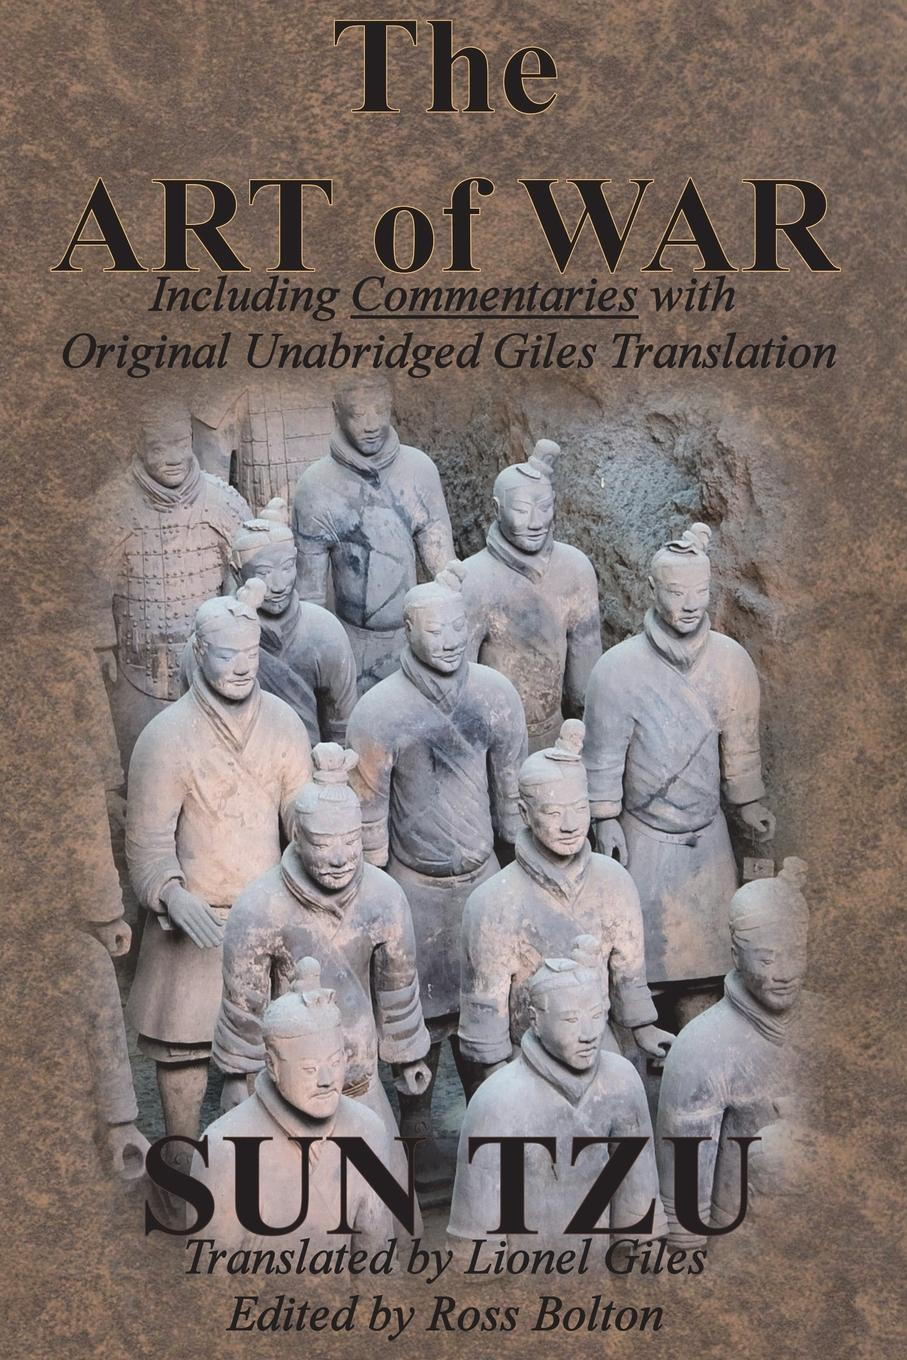 Sun Tzu, Lionel Giles The Art of War (Including Commentaries with Original Unabridged Giles Translation)